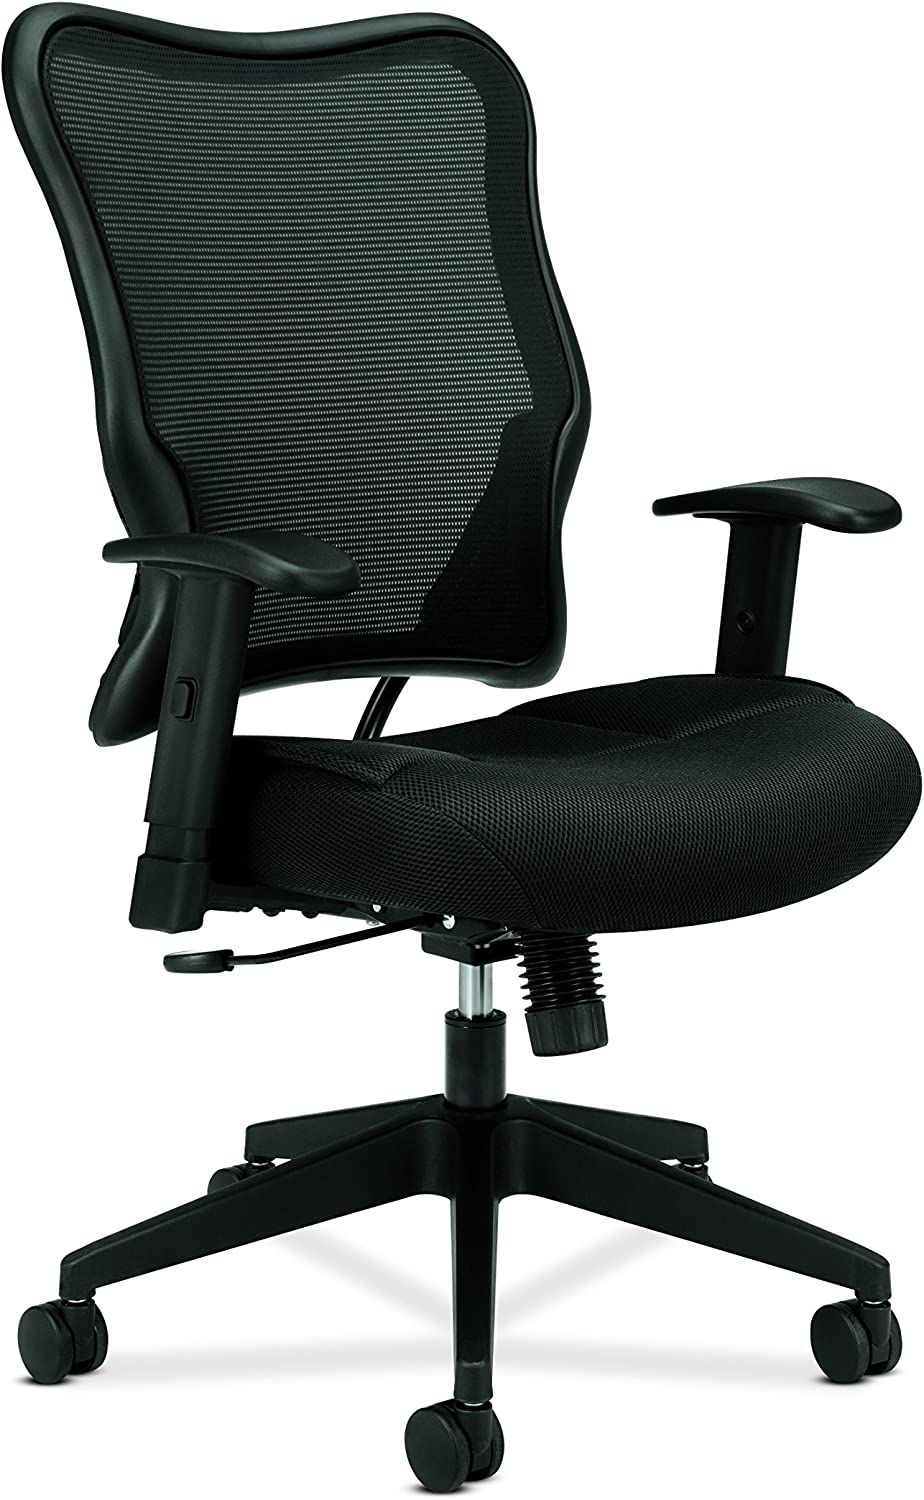 basyx by HON Mesh High-Back Task Chair, Black (HVL702)